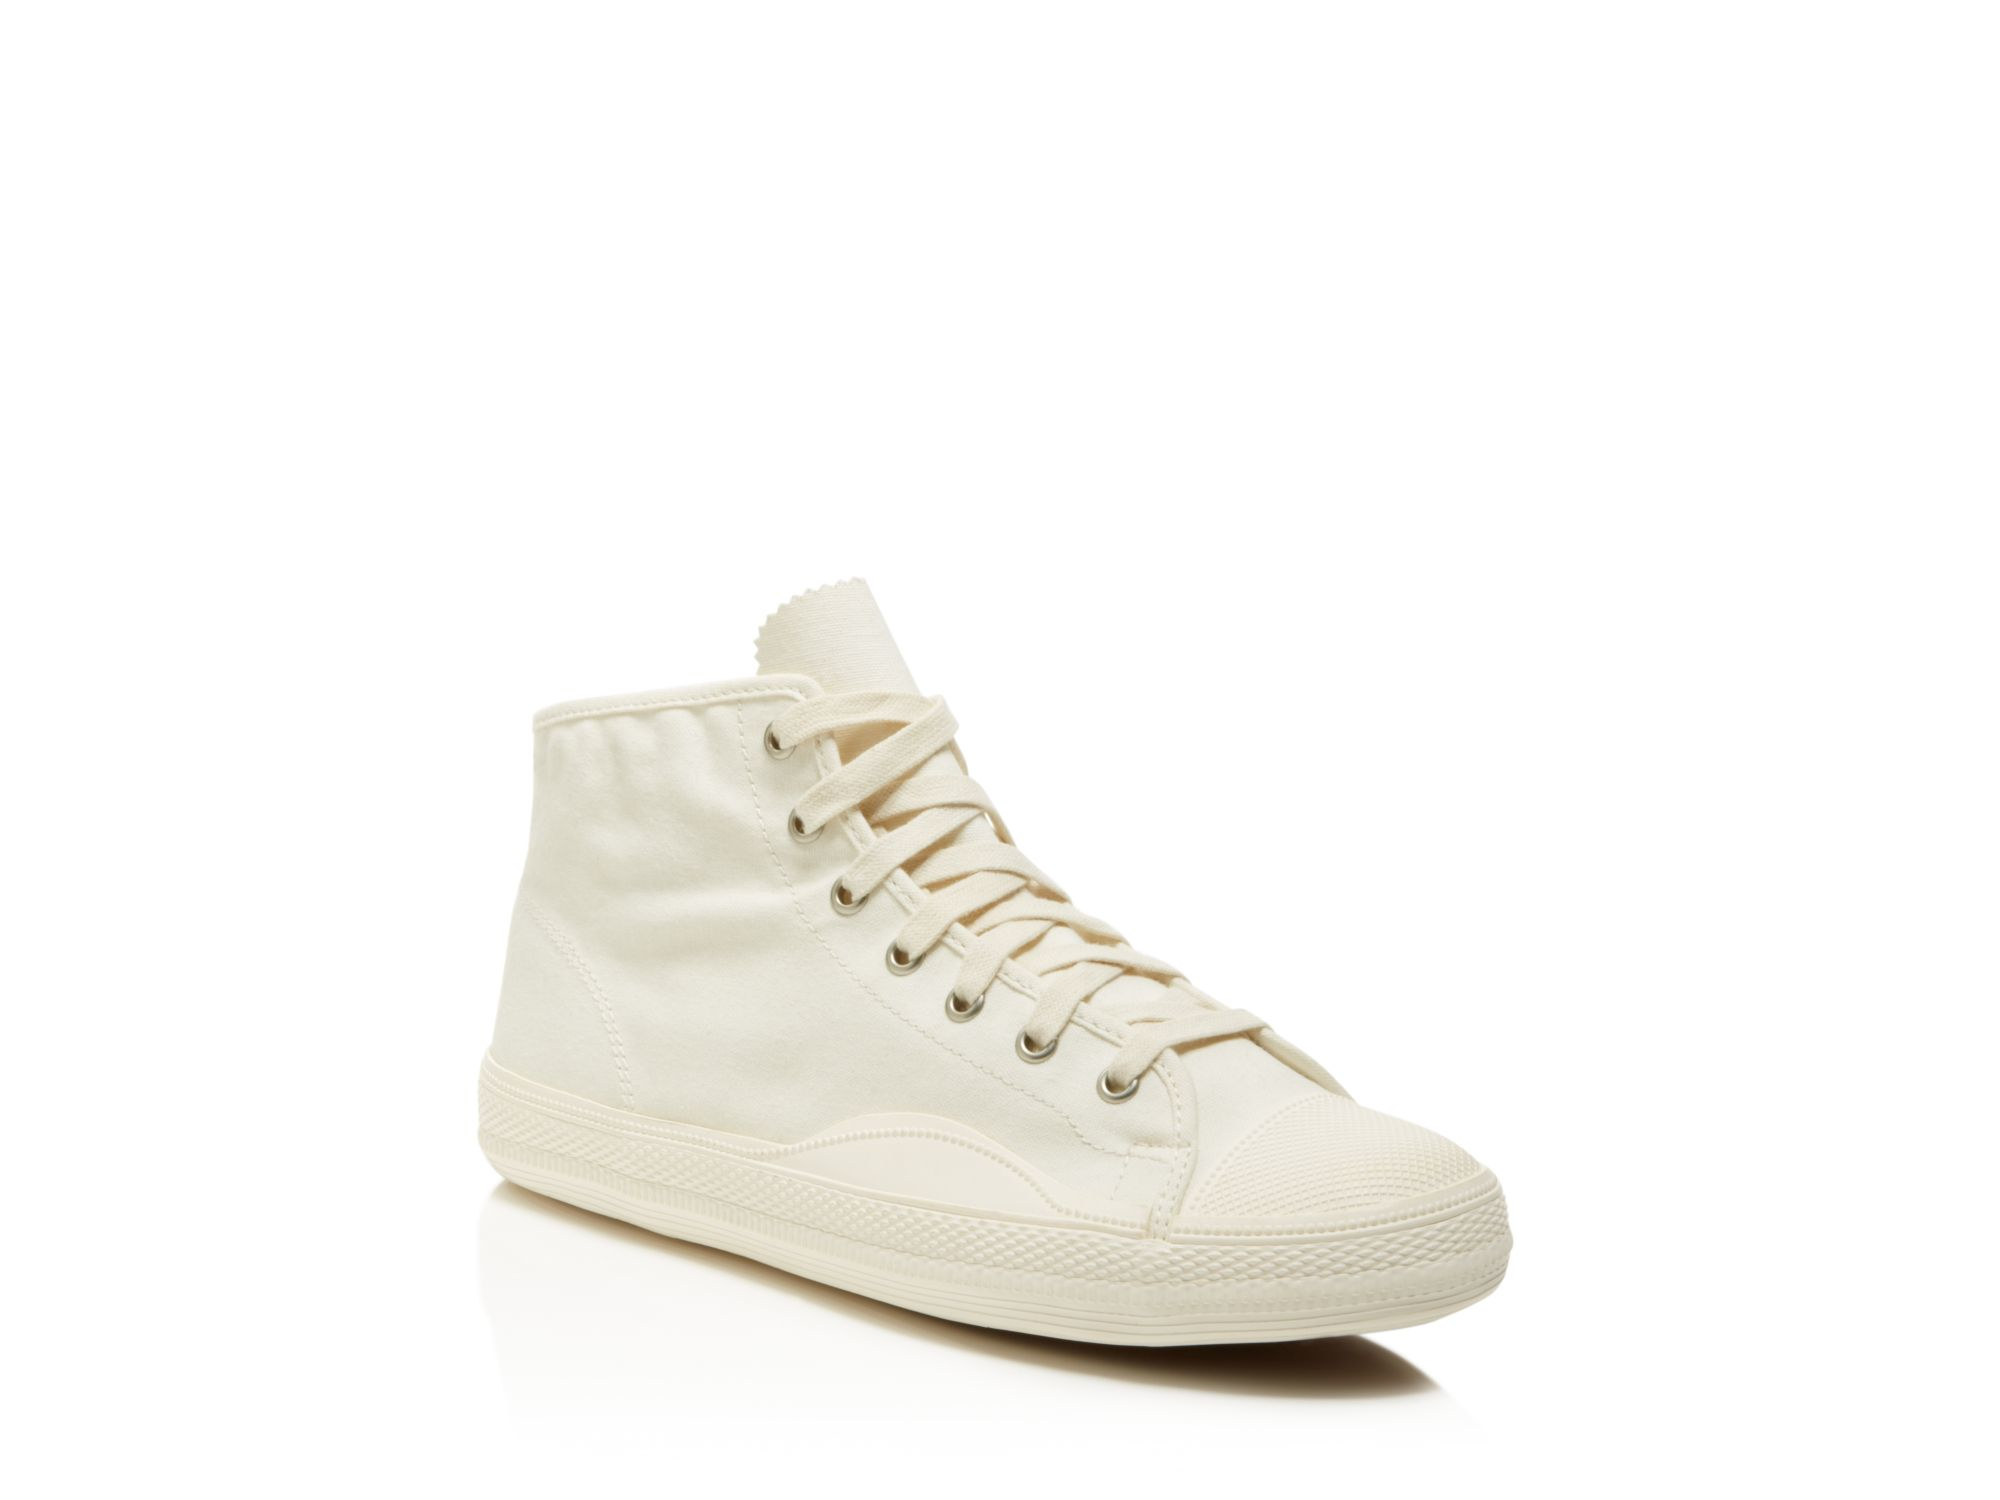 Tretorn Racket H Mid Canvas Sneakers In White For Men Lyst